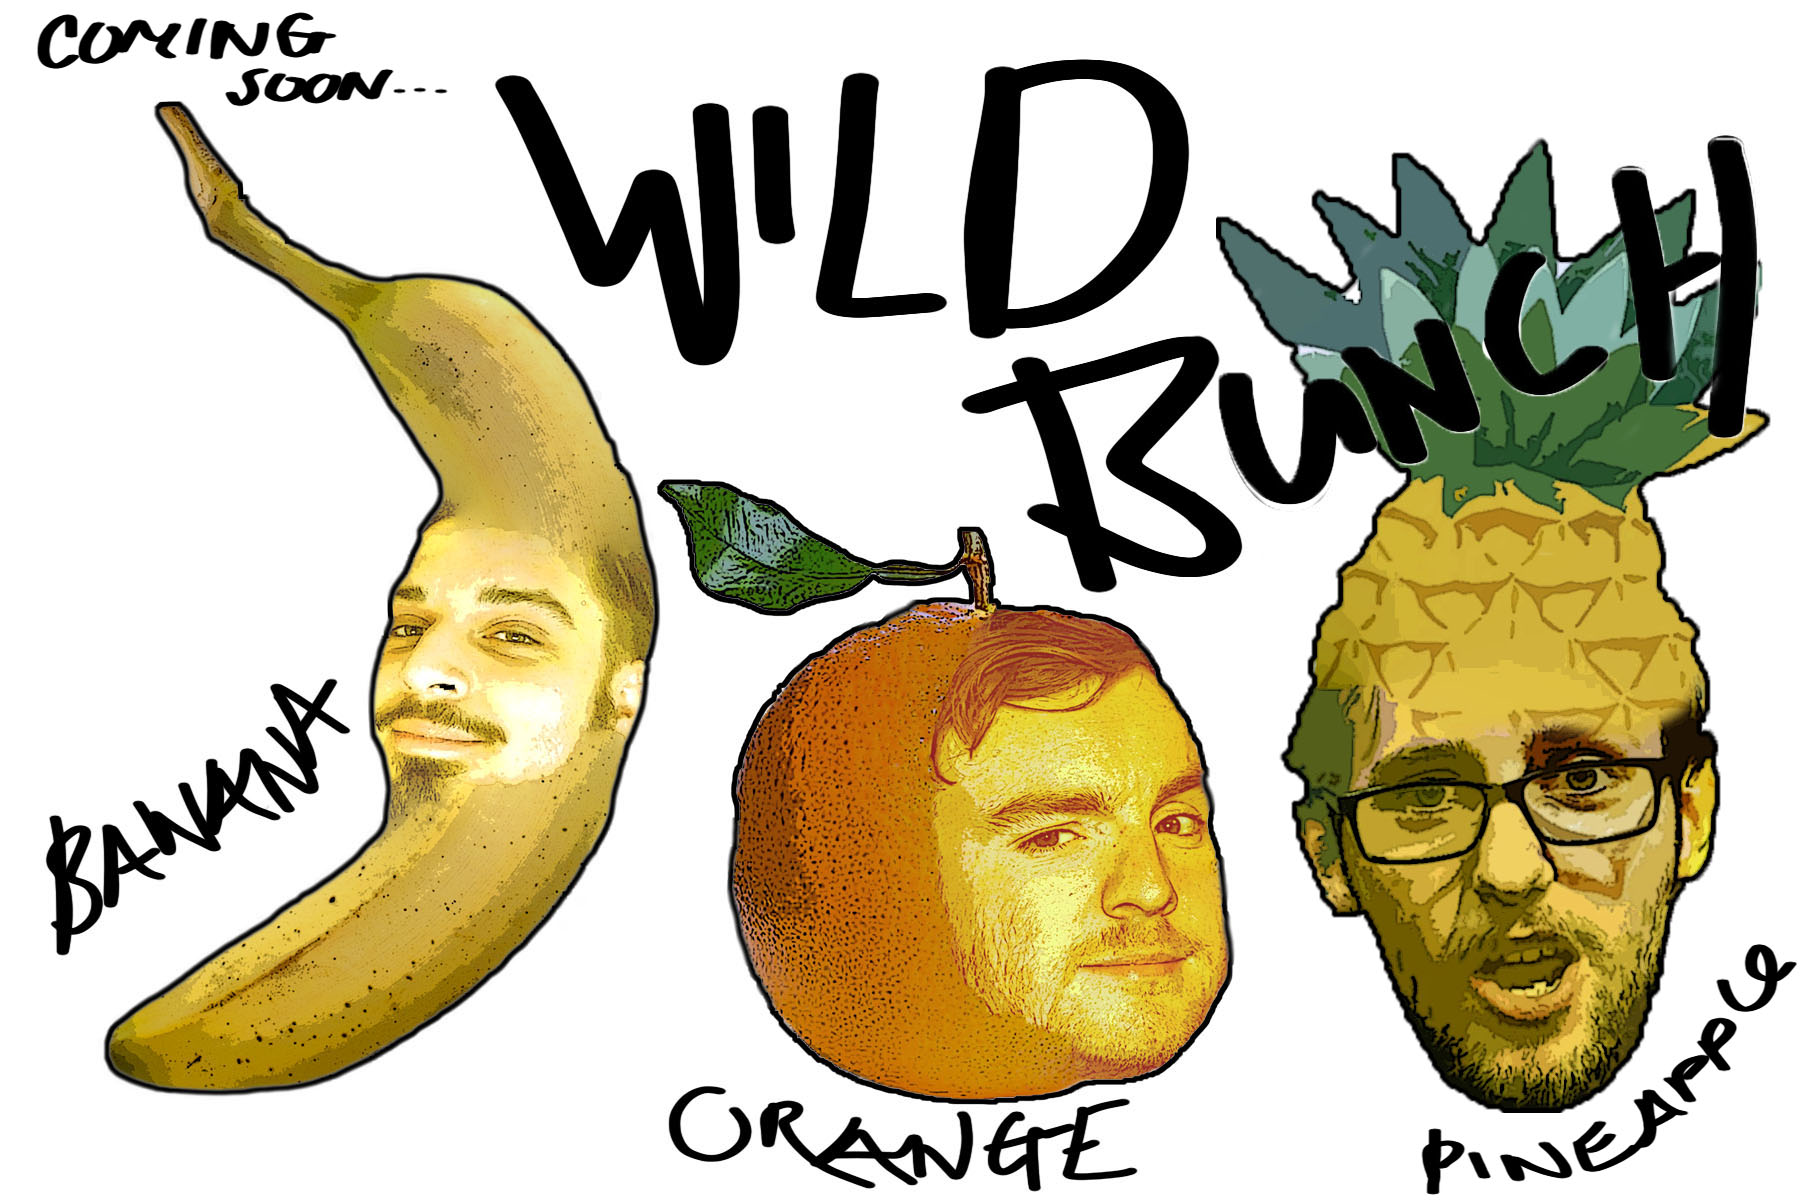 The Wild Bunch - The Wild Bunch: A Fantastic fruit salad. Wild Bunch Fresh Pack arrives, featuring an array of wacky characters. Sketches are also fast furious and zesty like an orange. The characters are surreal and absurd and that's not including ourselves. Come by and see Orange,(James Watkins) Pineapple (James Pollitt) and Banana (Ben Gillies) as they jump fresh of the shelves, out of the pack and into your local bar/comedy club or venue. It'll be a fruit salad of fun!facebook: https://www.facebook.com/Wild8unchInstagram: https://www.instagram.com/wildbunch__/